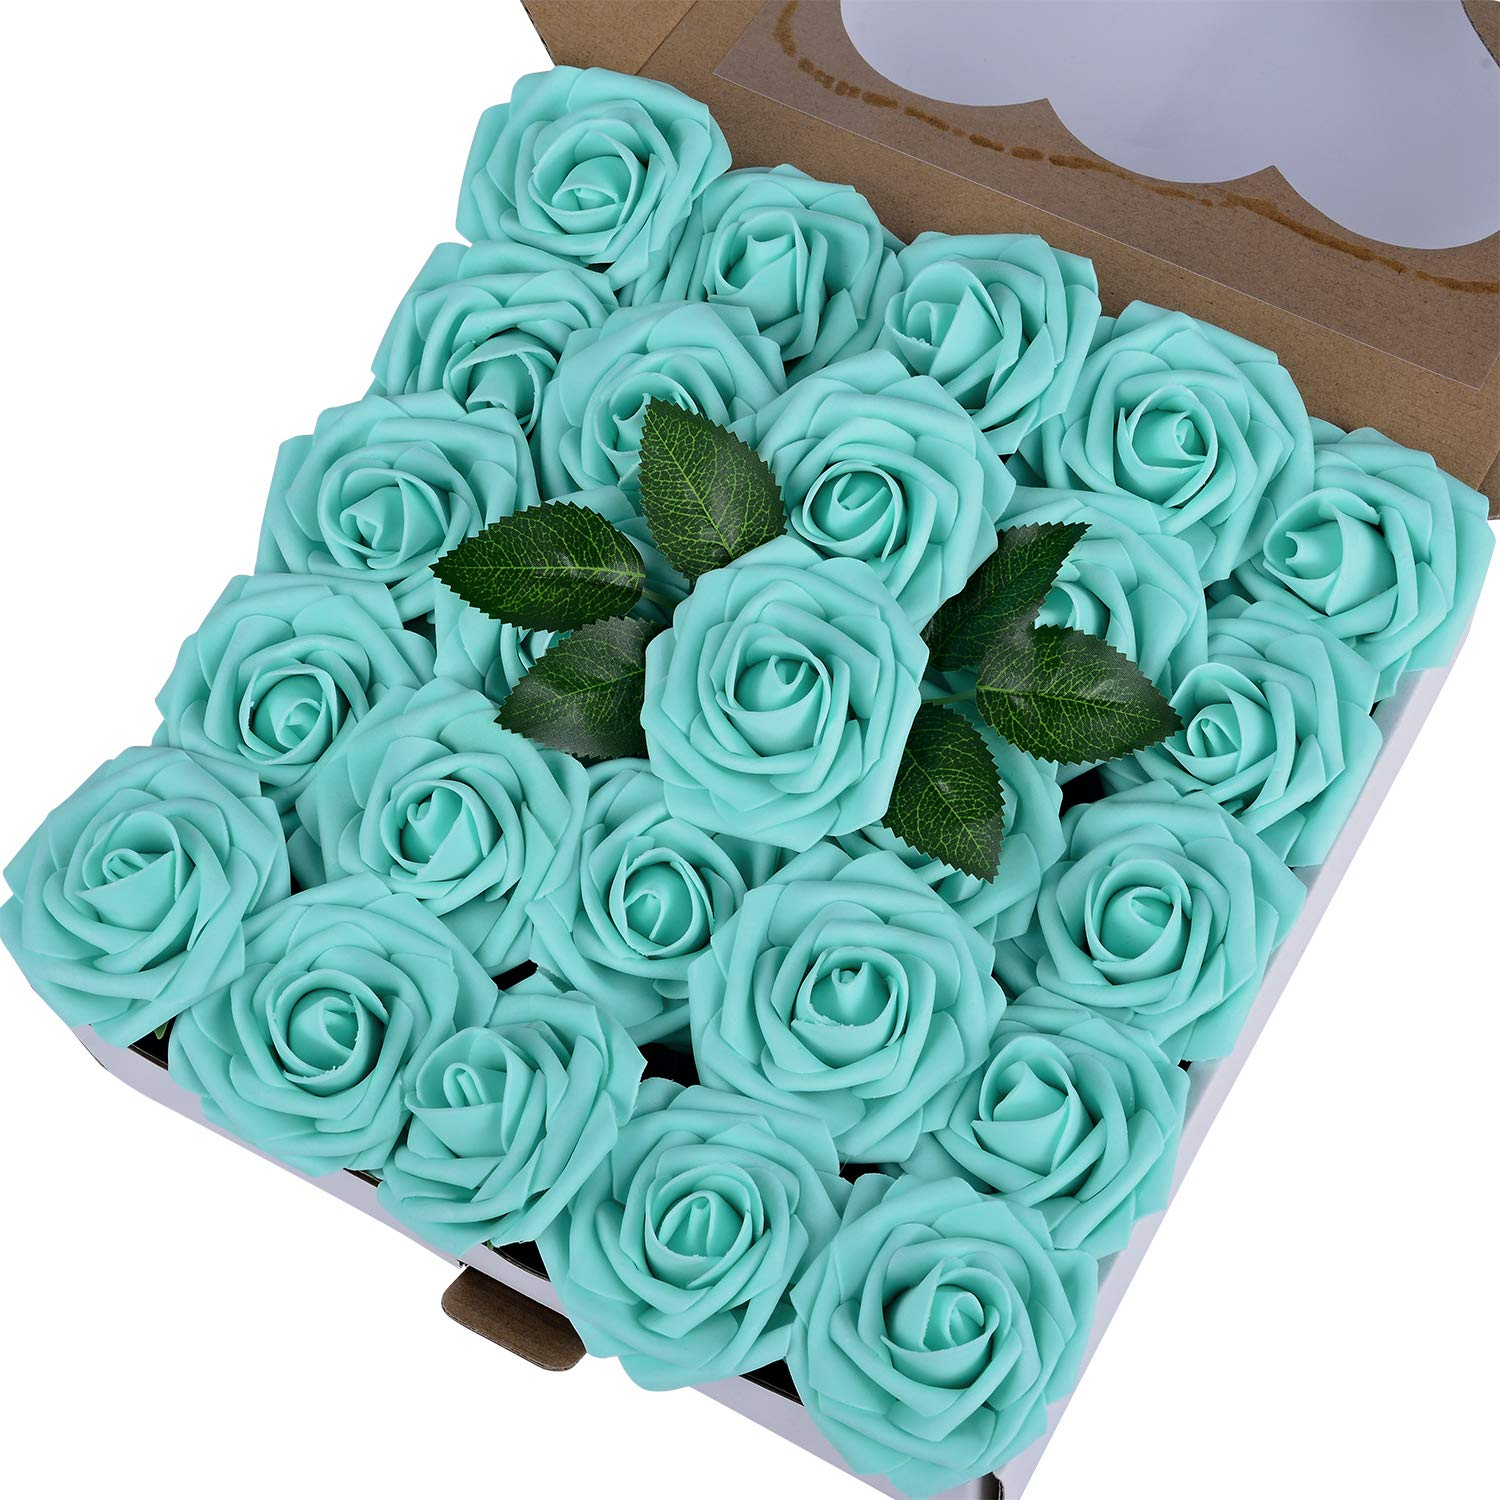 Breeze Talk Artificial Flowers Robin's Egg Blue Roses 50pcs Realistic Fake Roses w/Stem for DIY Wedding Bouquets Centerpieces Arrangements Party Baby Shower Home Decorations (50pcs Robin's Egg Blue)